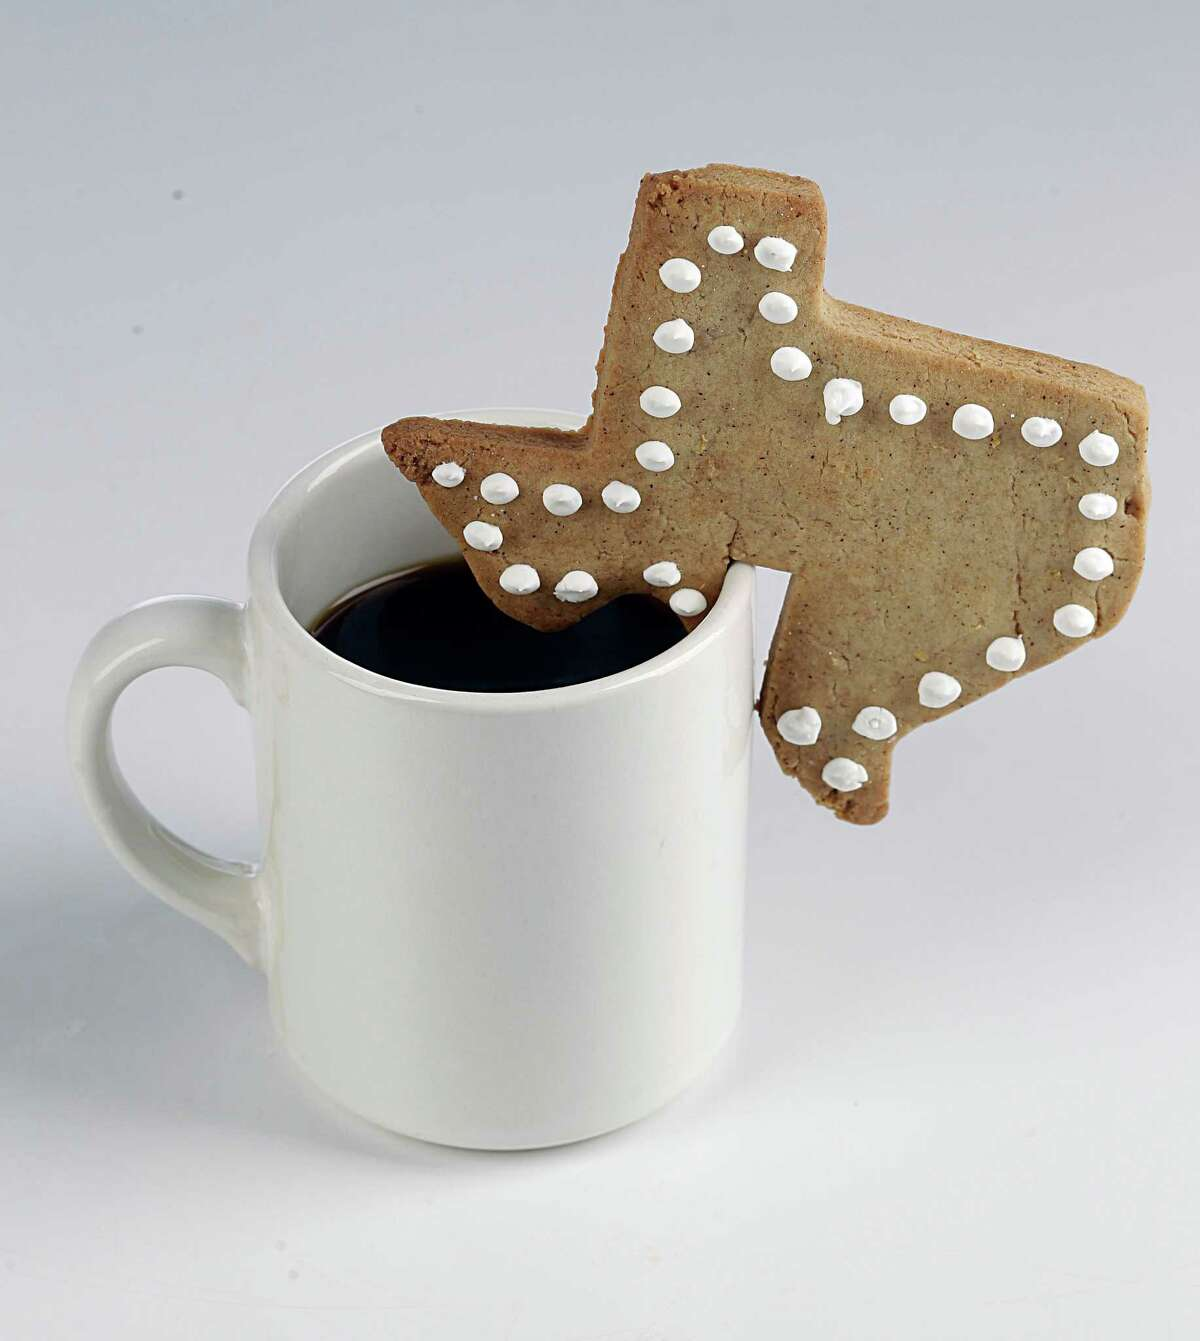 Scandinavian Rim cookies (the cookies are baked with a notch to hang on a coffee cup) Tuesday, Nov. 24, 2015, in Houston. ( James Nielsen / Houston Chronicle )